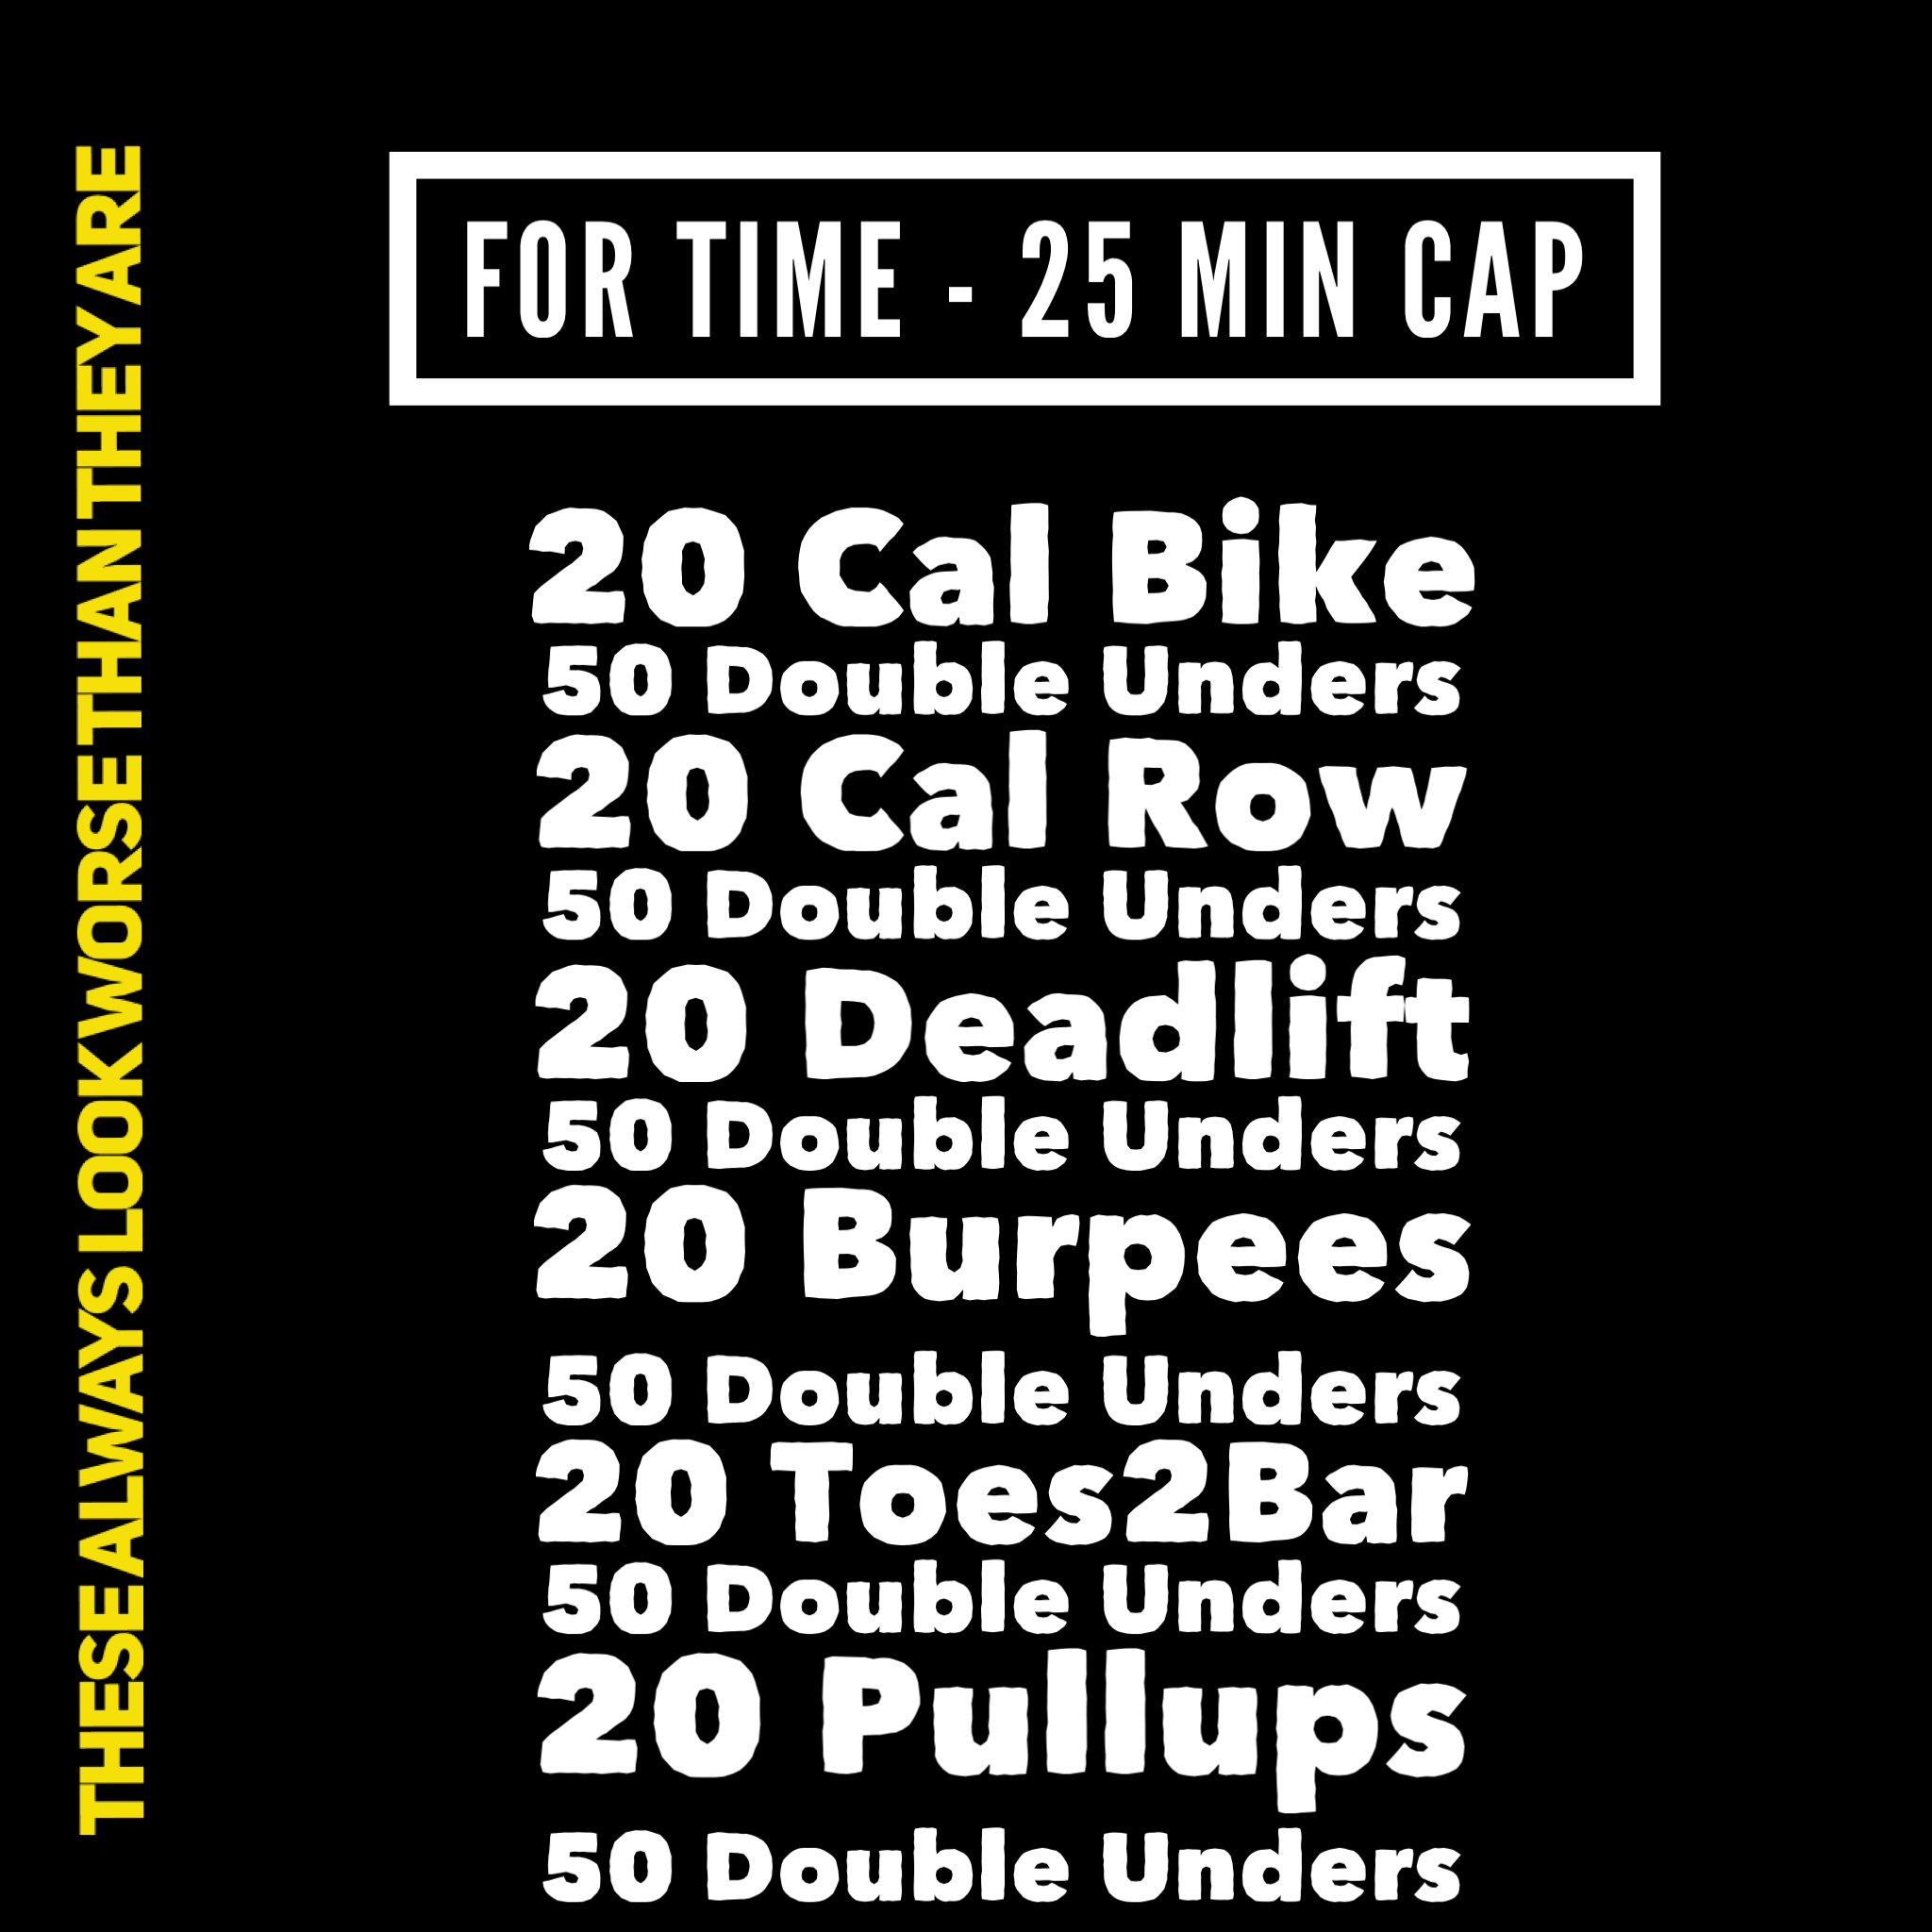 DU= 50 Singles with 10 Double Attempts  Deadlift @ 225/155  Level 3 dubs Bar Muscle Ups for the Pullups. (If you have them, pick a number with your coach and do that number instead of the Pullups)